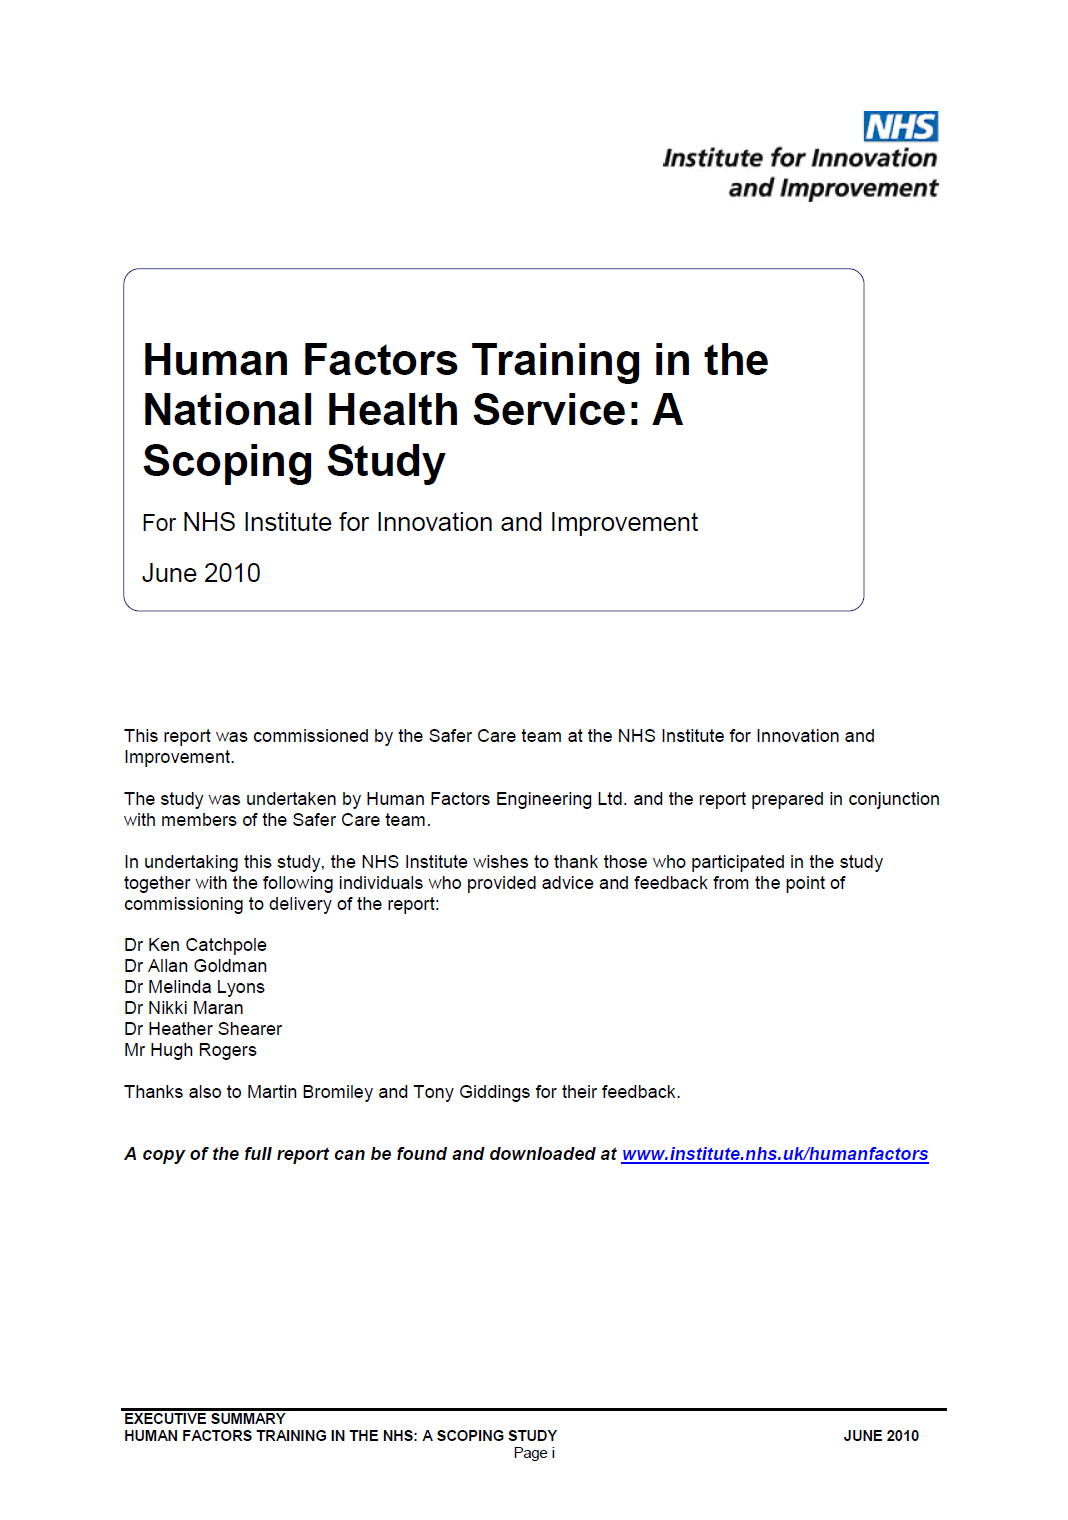 Human Factors training in the NHS – A scoping study